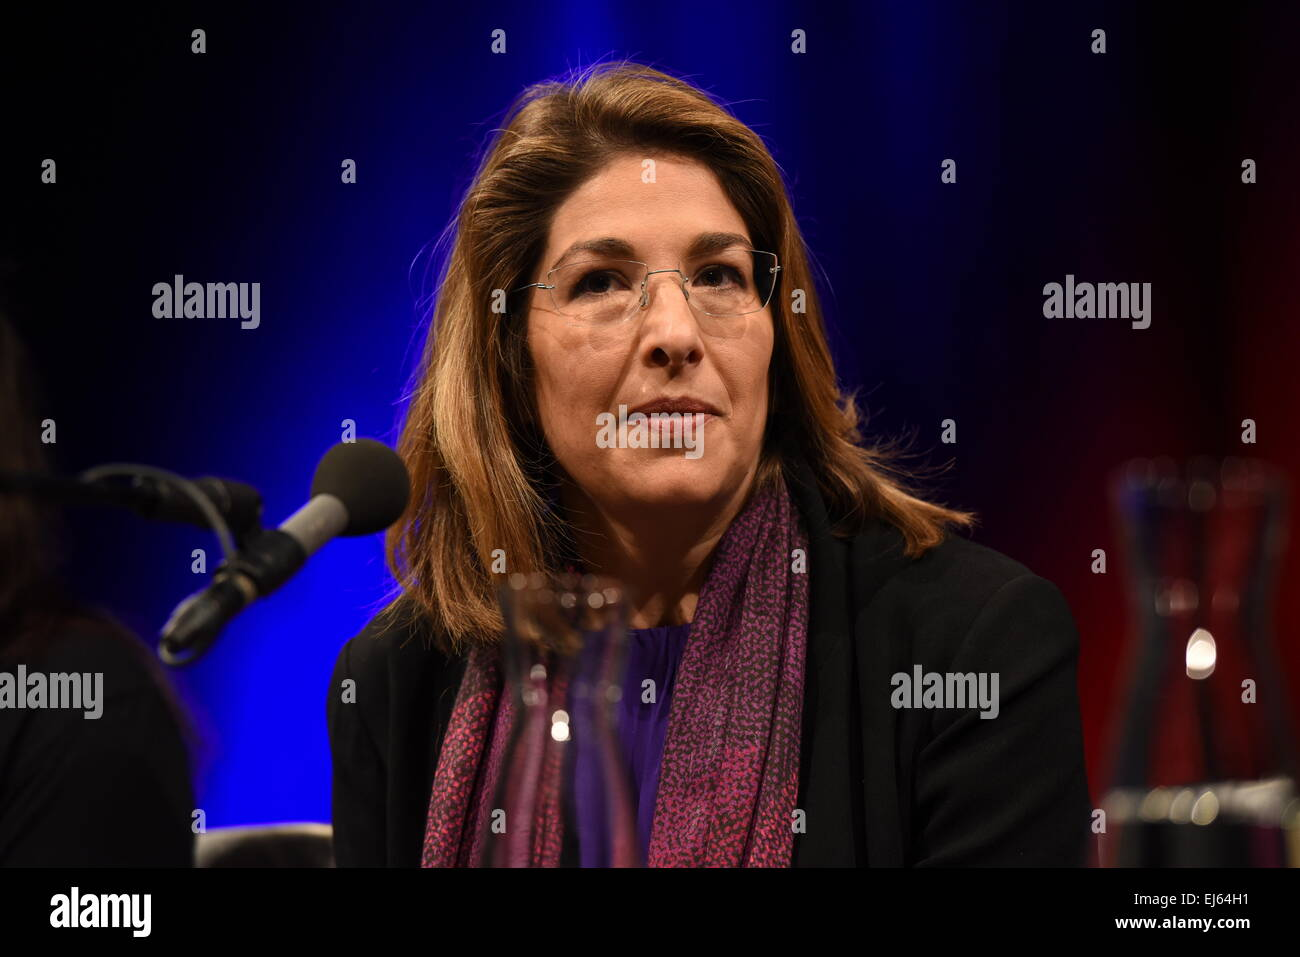 Canadian Author And Activist Naomi Klein Reads At The International Literature Festival LitCologne In Cologne Germany 20 March 2015